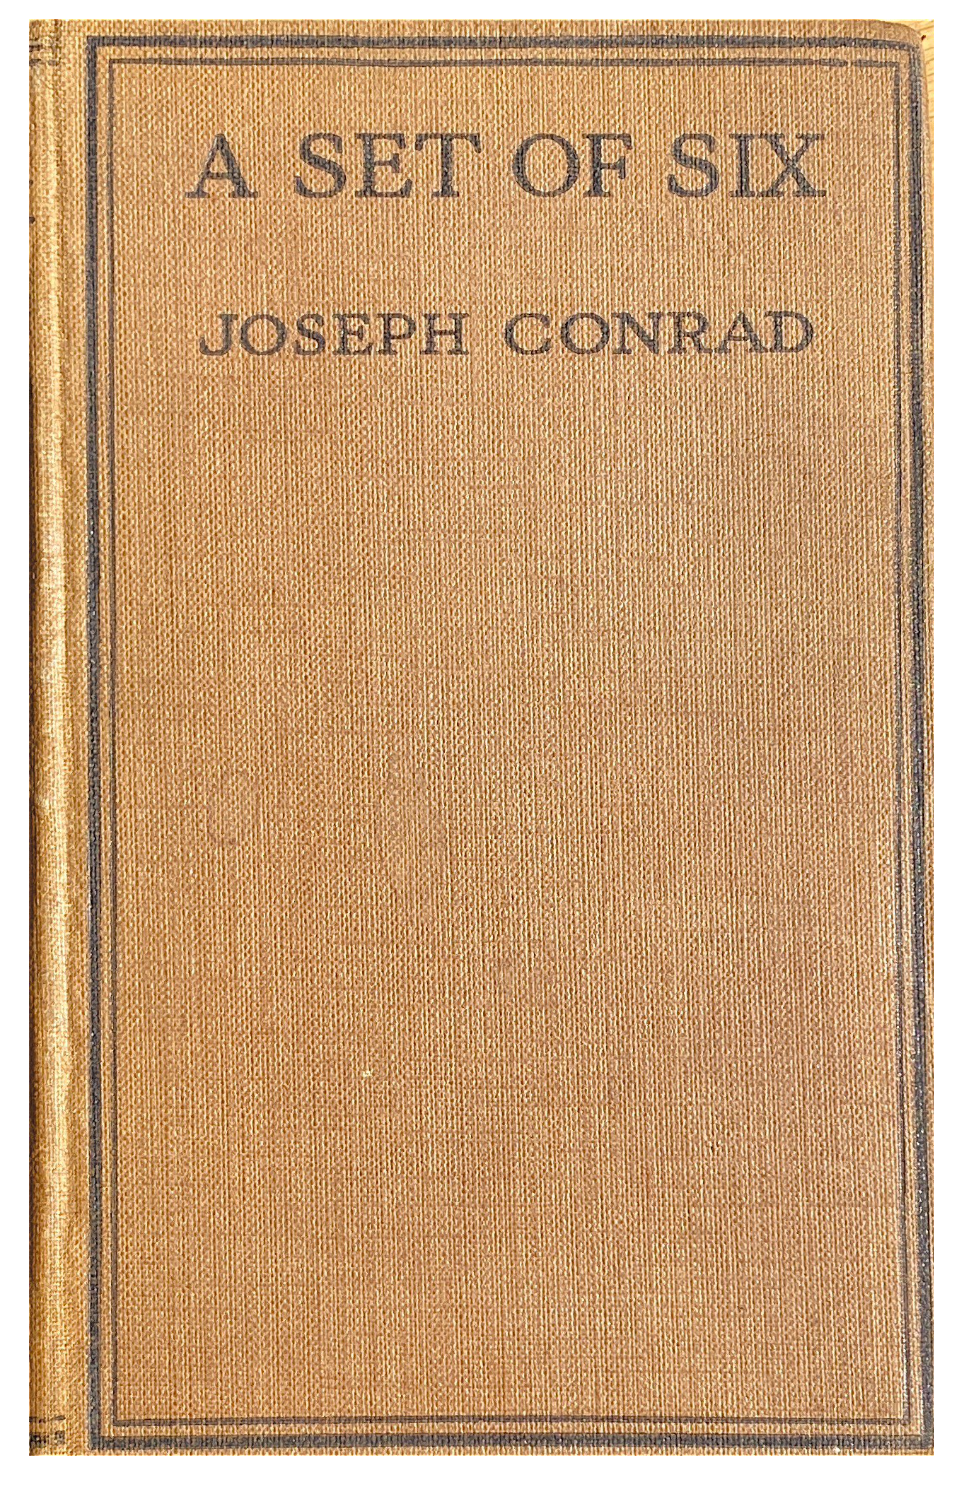 Joseph Conrad A Set of Six